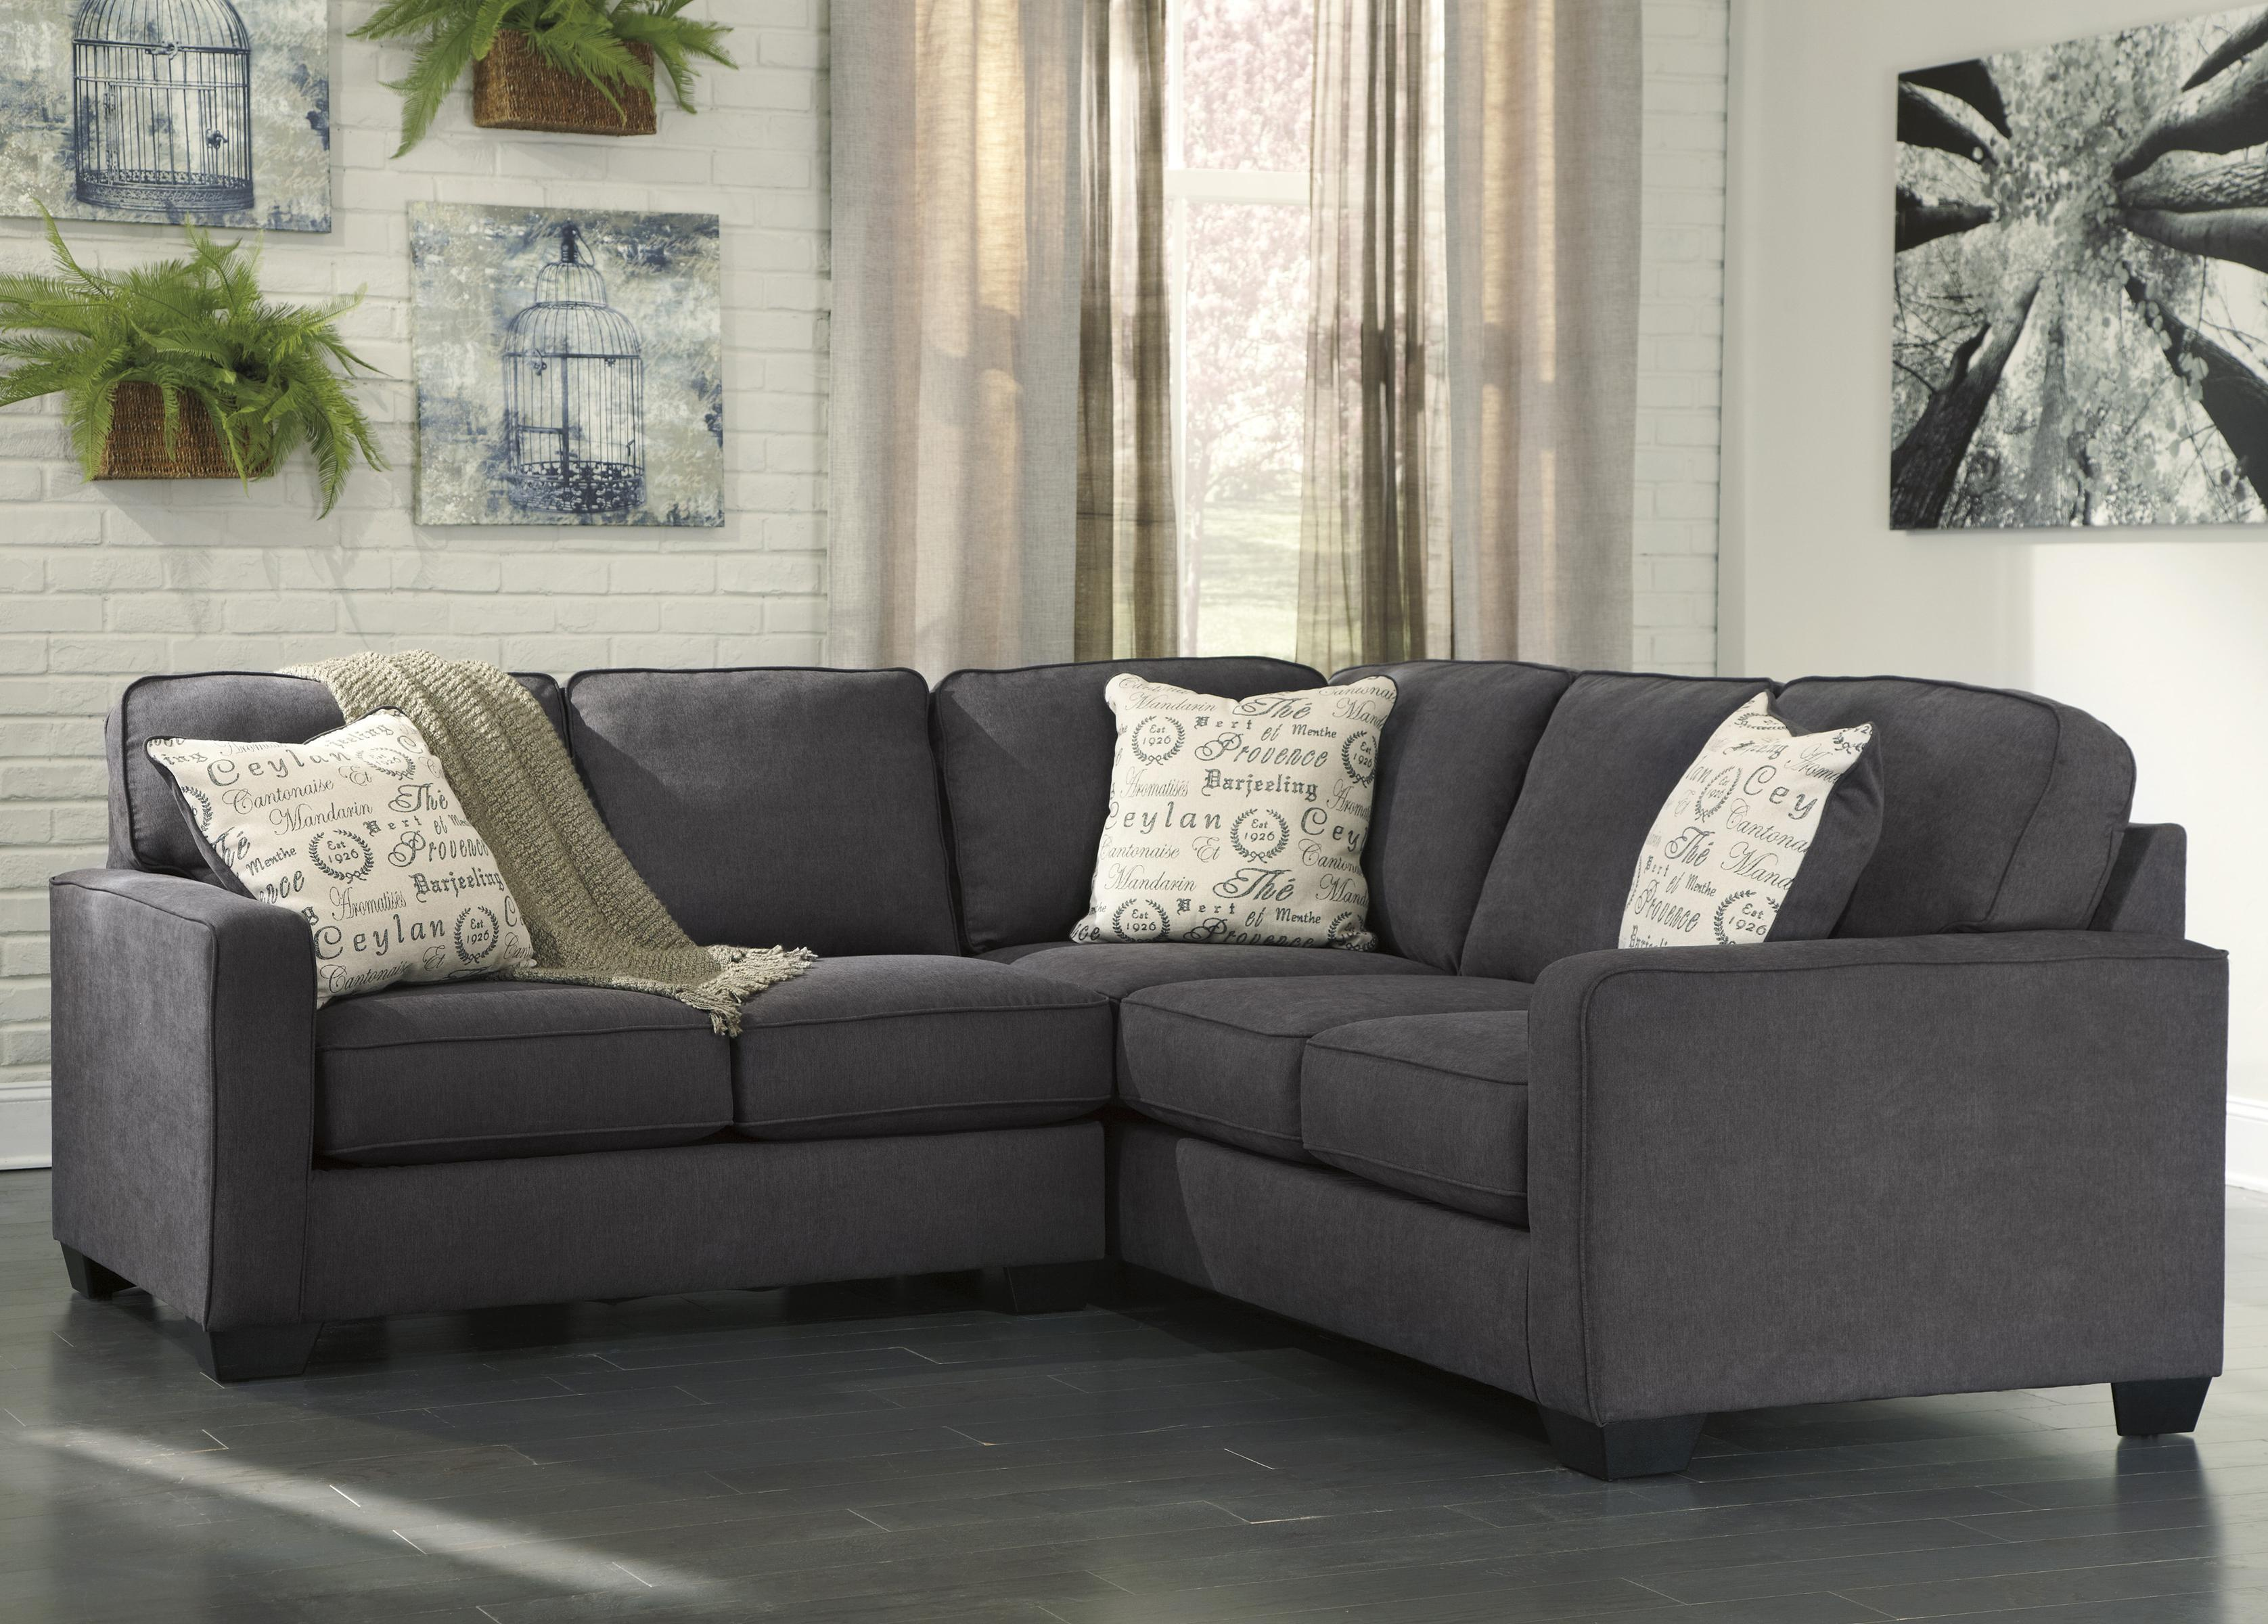 Signature Design by Ashley Alenya - Charcoal 2-Piece Sectional with Left Loveseat - Item : ashley furniture sectionals - Sectionals, Sofas & Couches